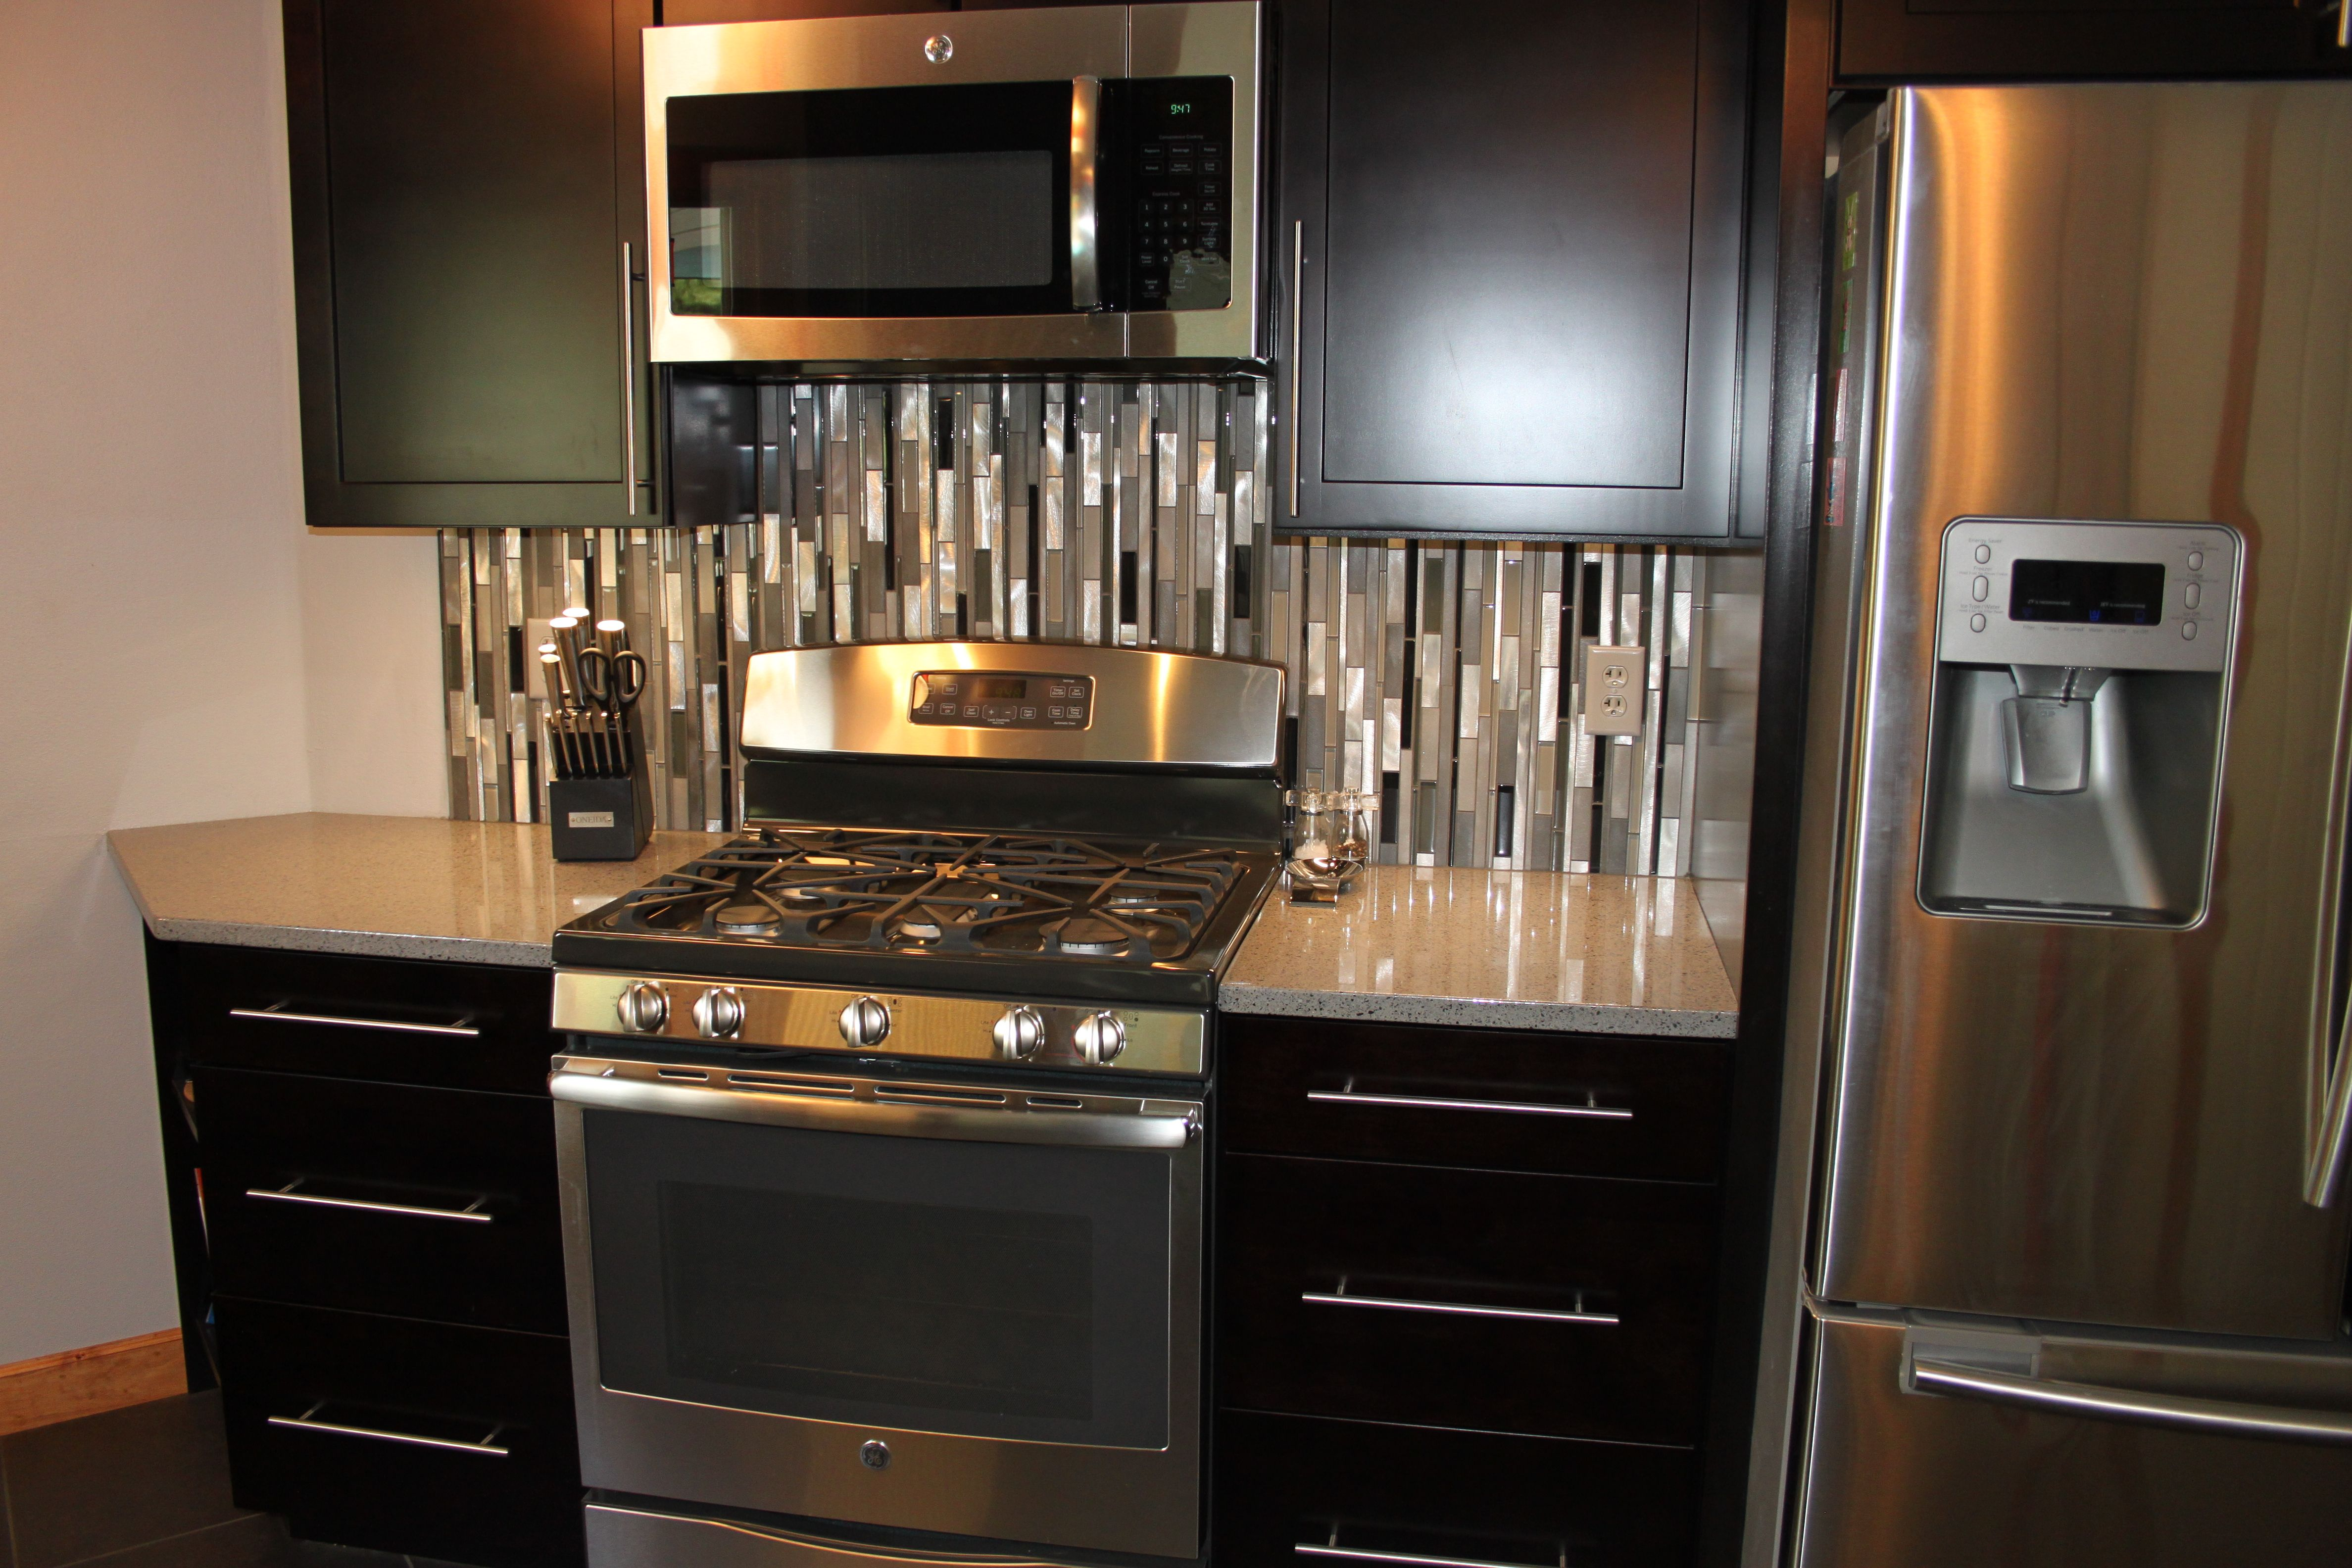 Waypoint Cabinetry, Glazzio Glass Stainless Back Splash, Silestone  Countertops, Blanco Sink Faucet |